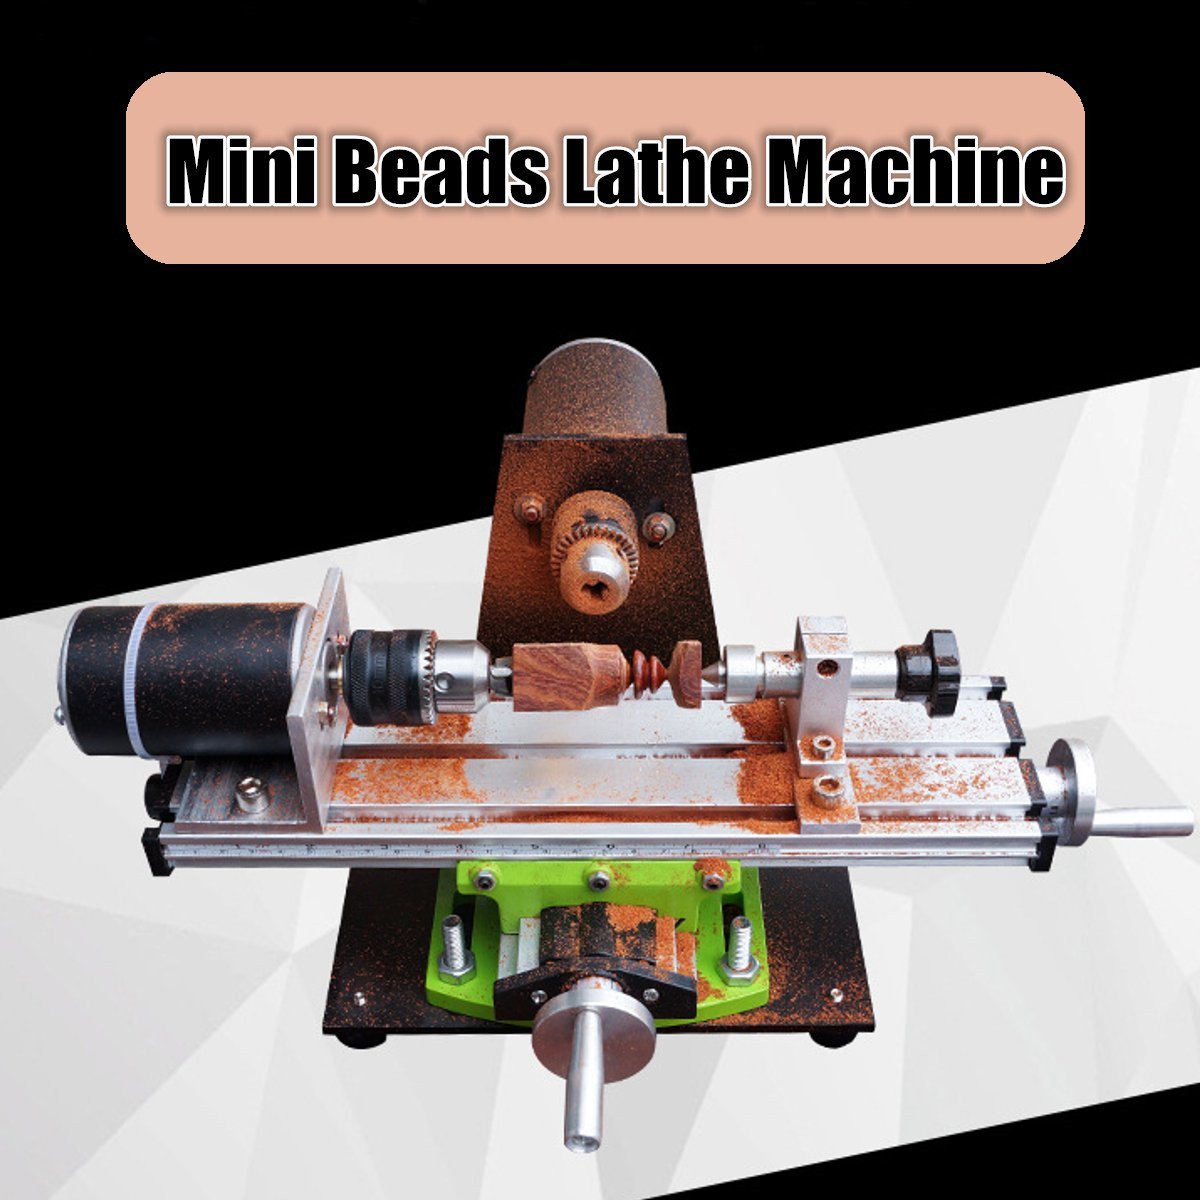 Household Desktop Polishing Machine Lathe 220V Mini Beads Lathe Machine DIY Wood Beads Wood Working Machine Tools china wood working mini cnc lathe is900